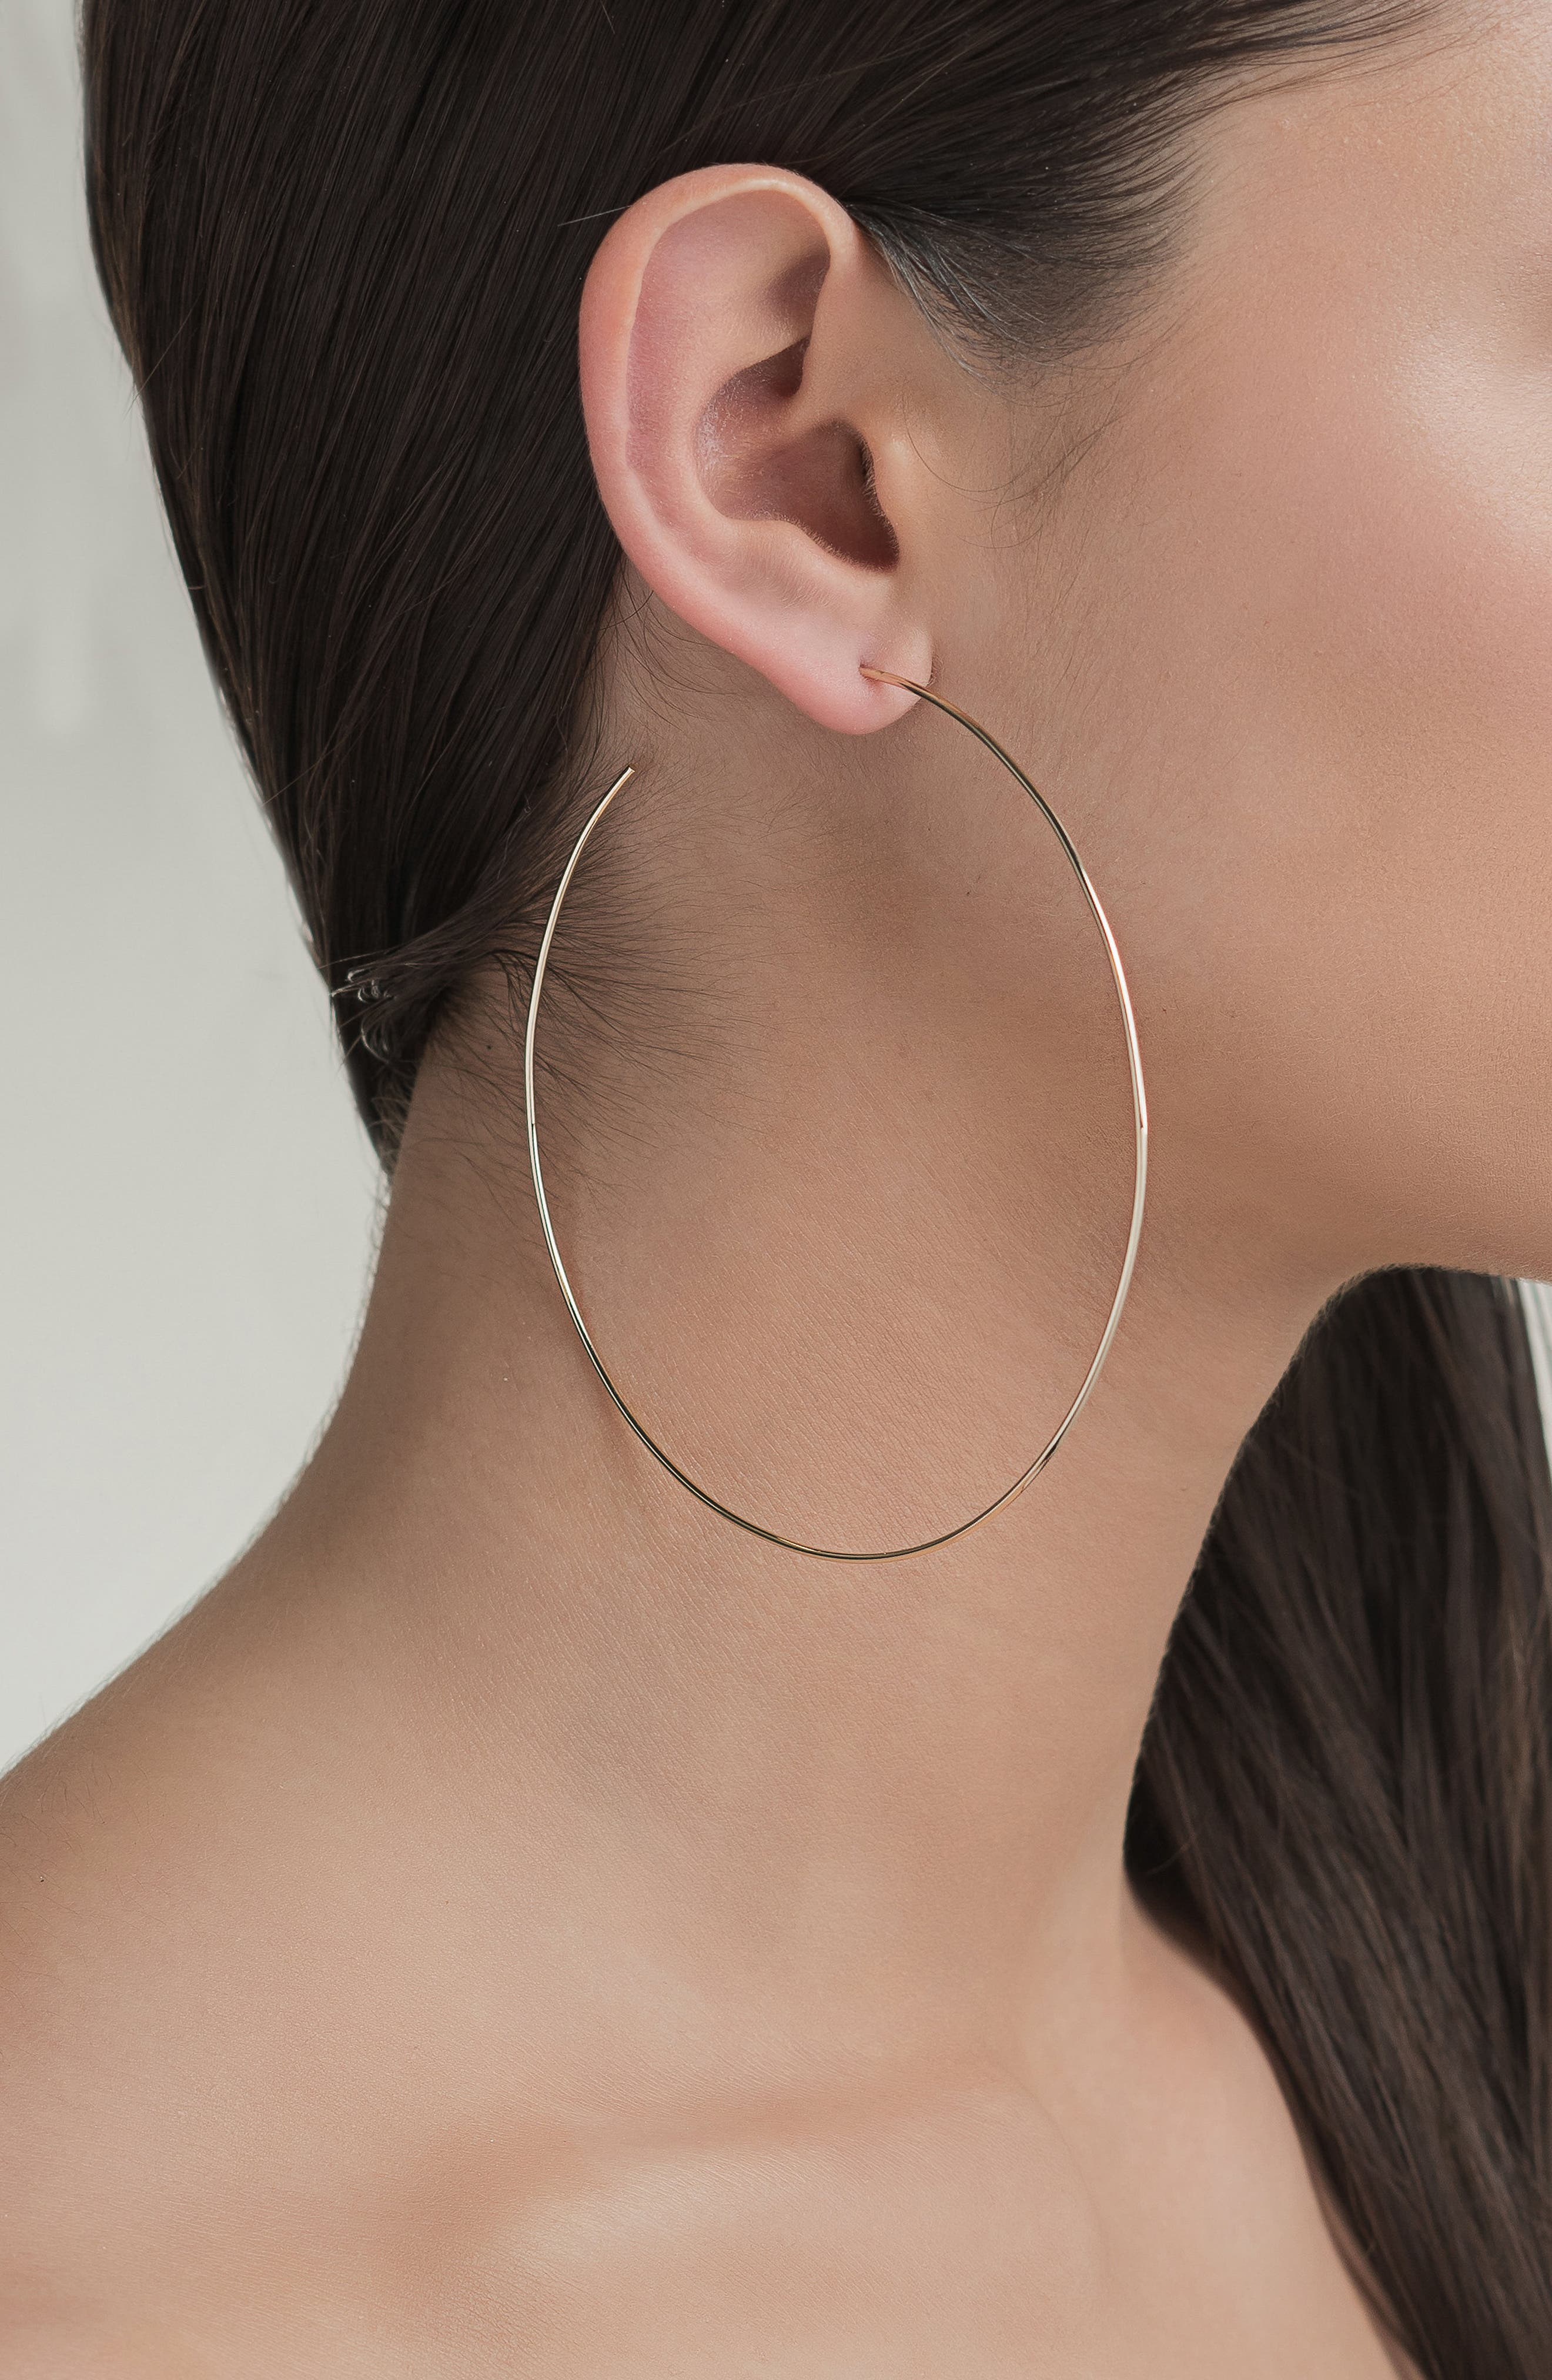 Open Wire Hoop Earrings,                             Alternate thumbnail 2, color,                             Yellow Gold